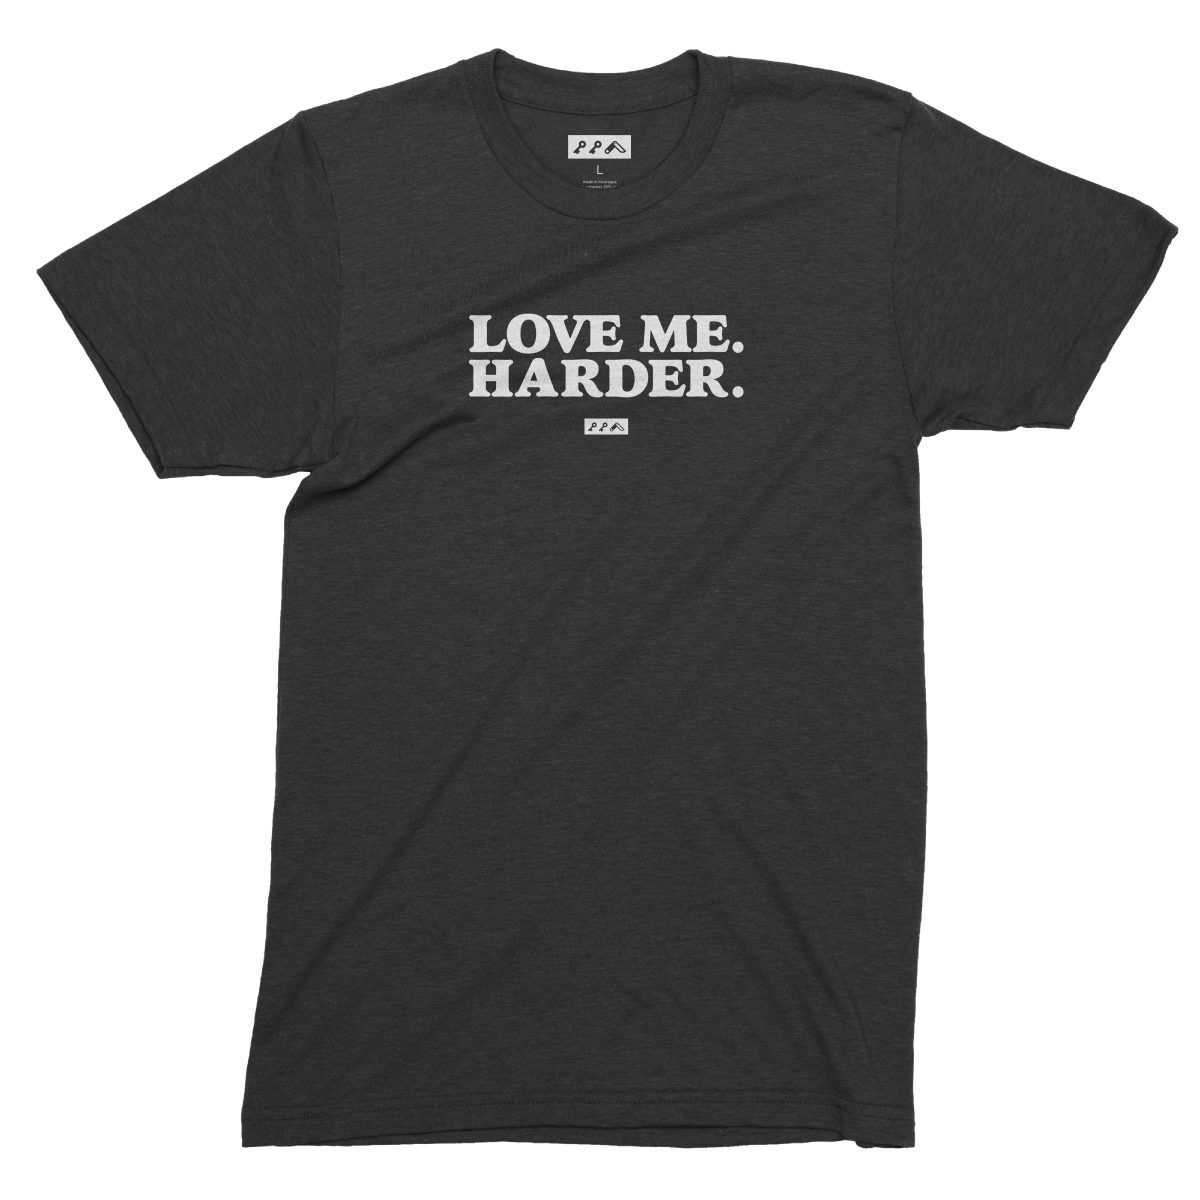 LOVE ME. HARDER. funny love quote tee in charcoal black tri-blend by kikicutt